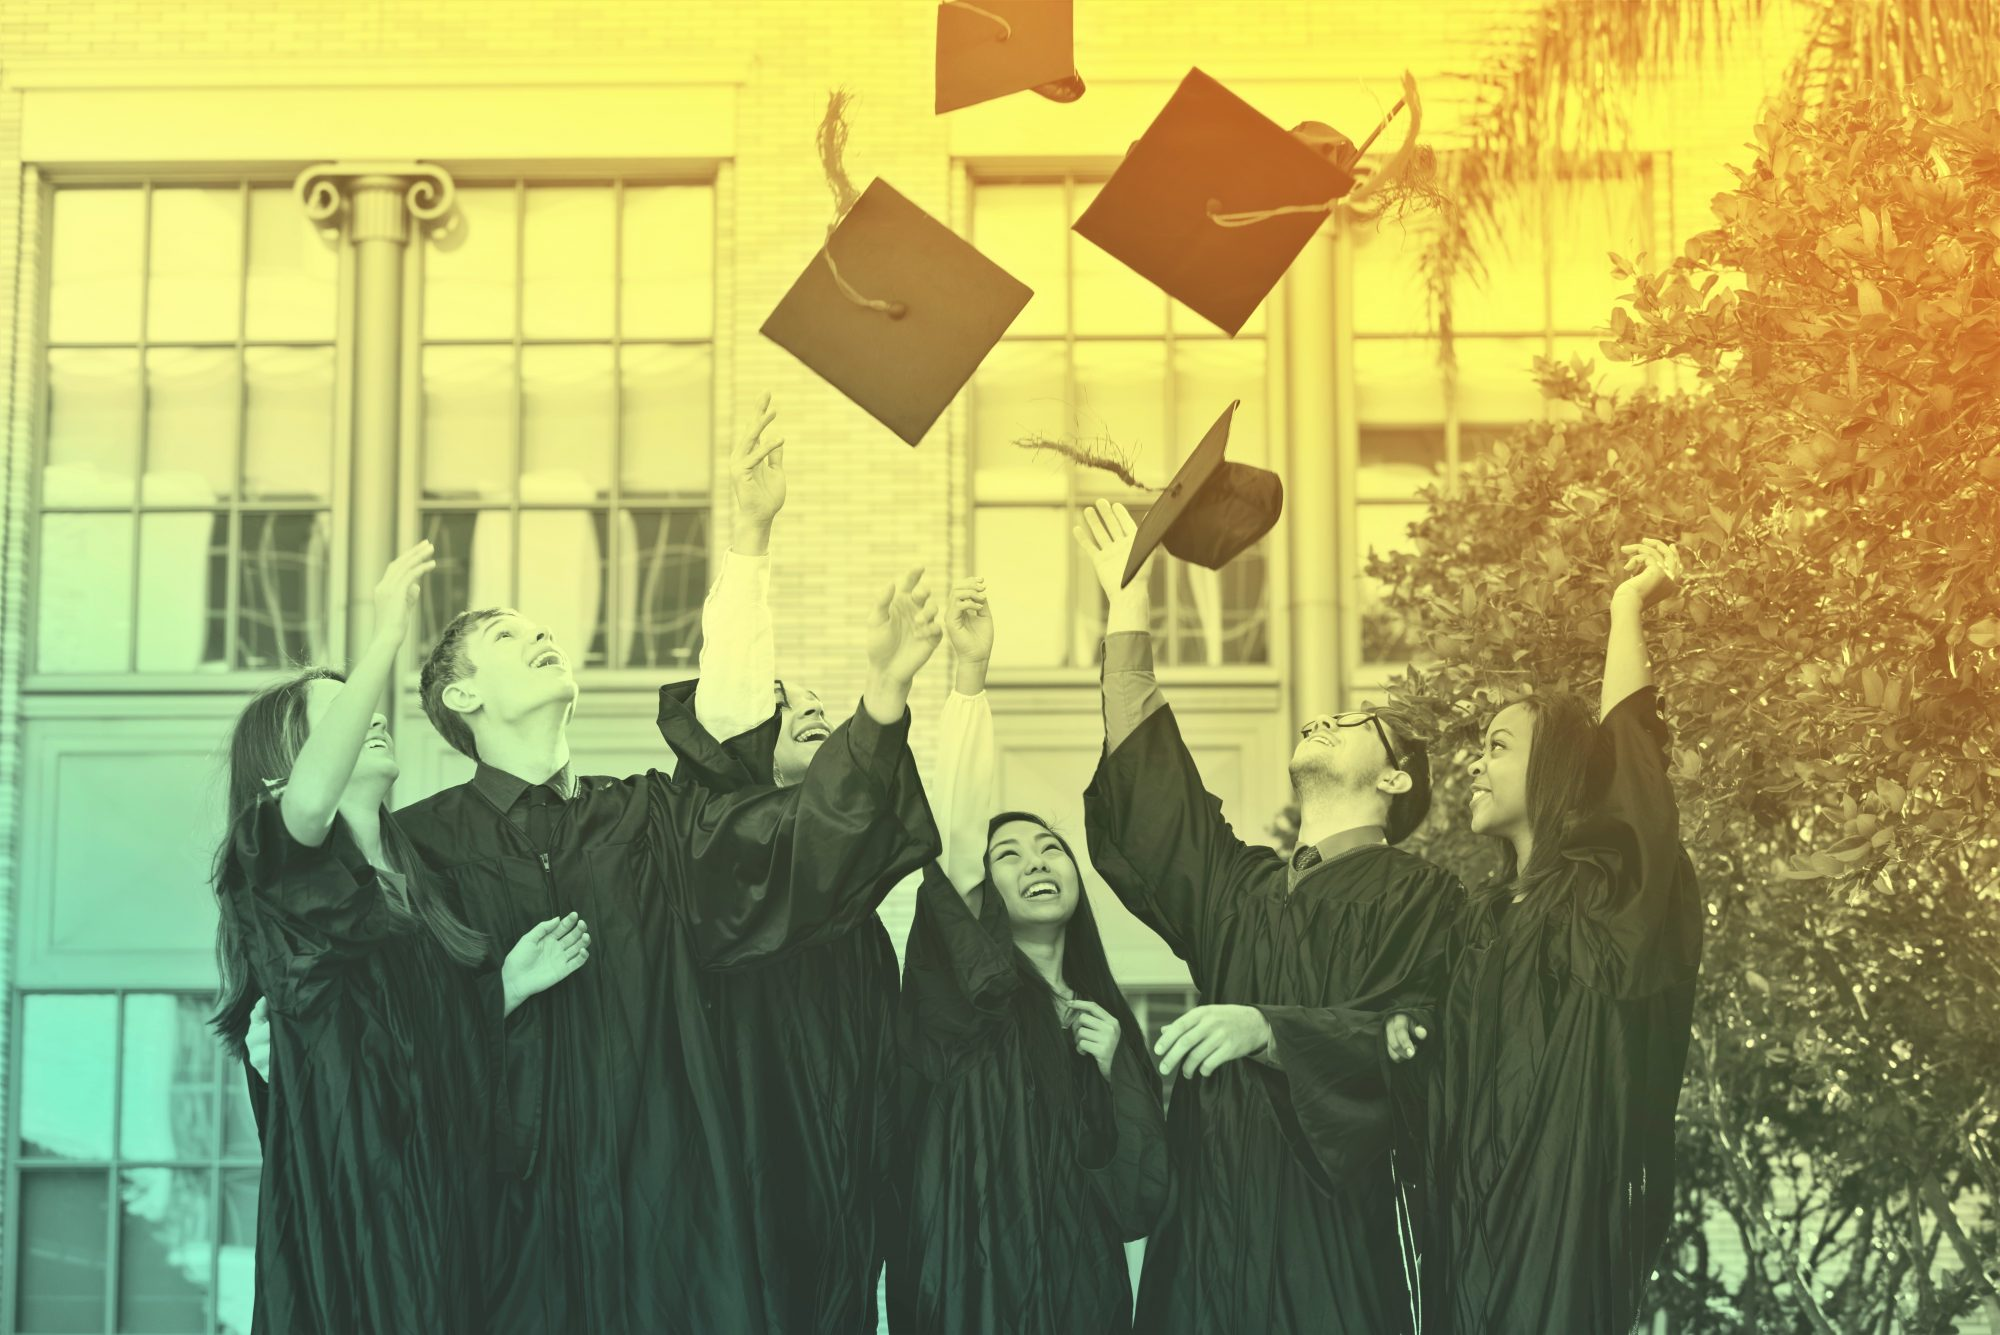 Group of students at graduation tossing caps